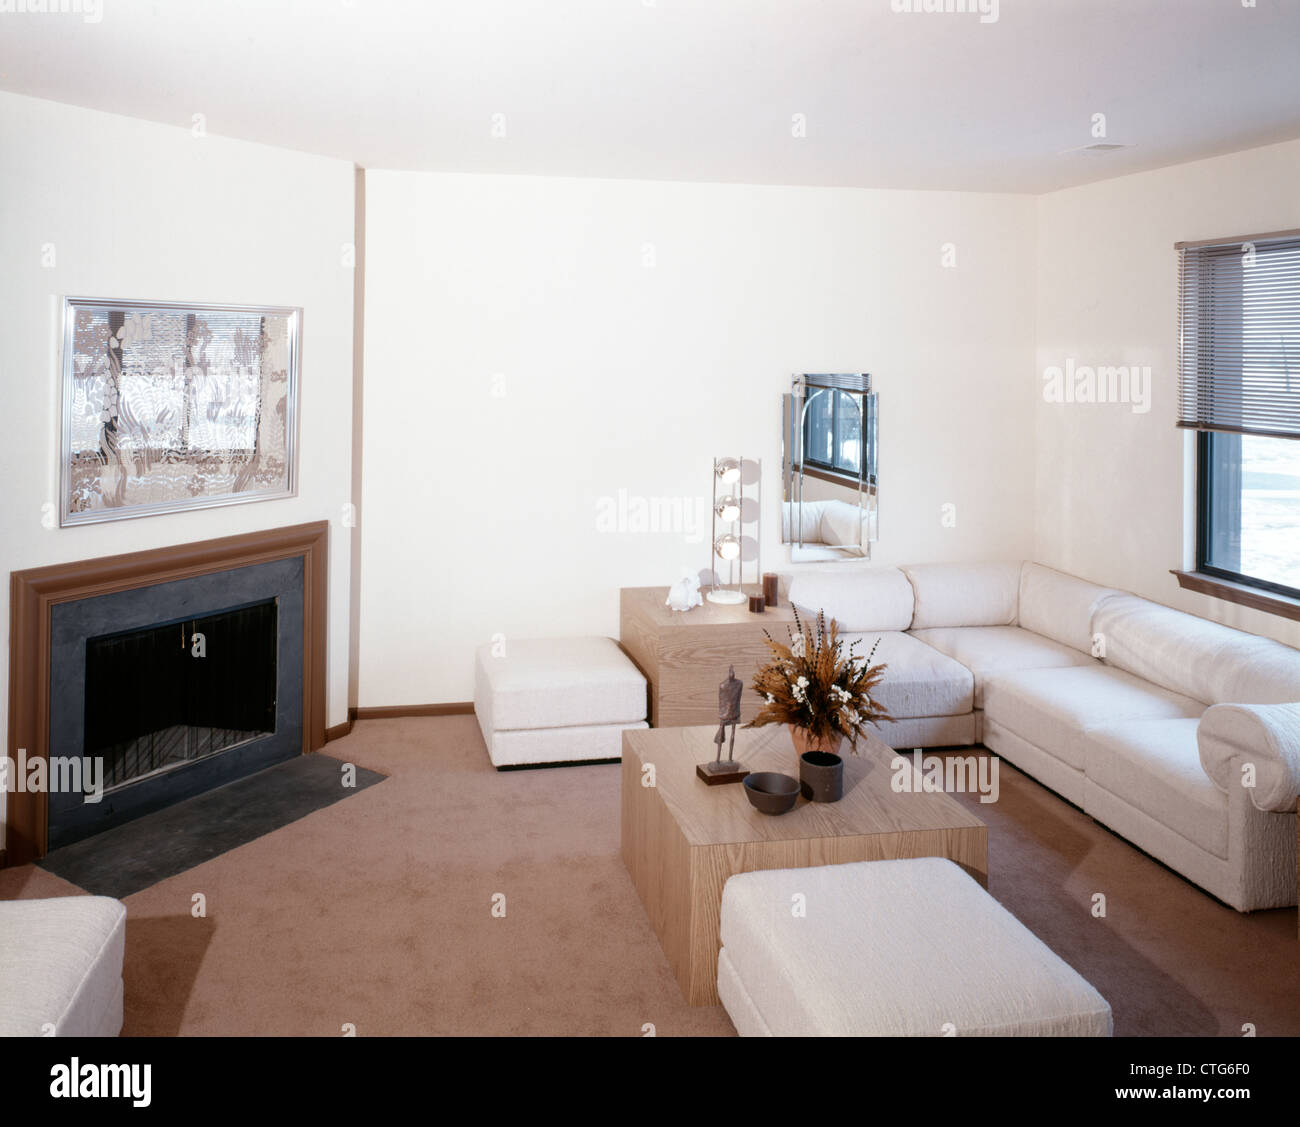 1970s Living Room Stock Photos & 1970s Living Room Stock Images - Alamy